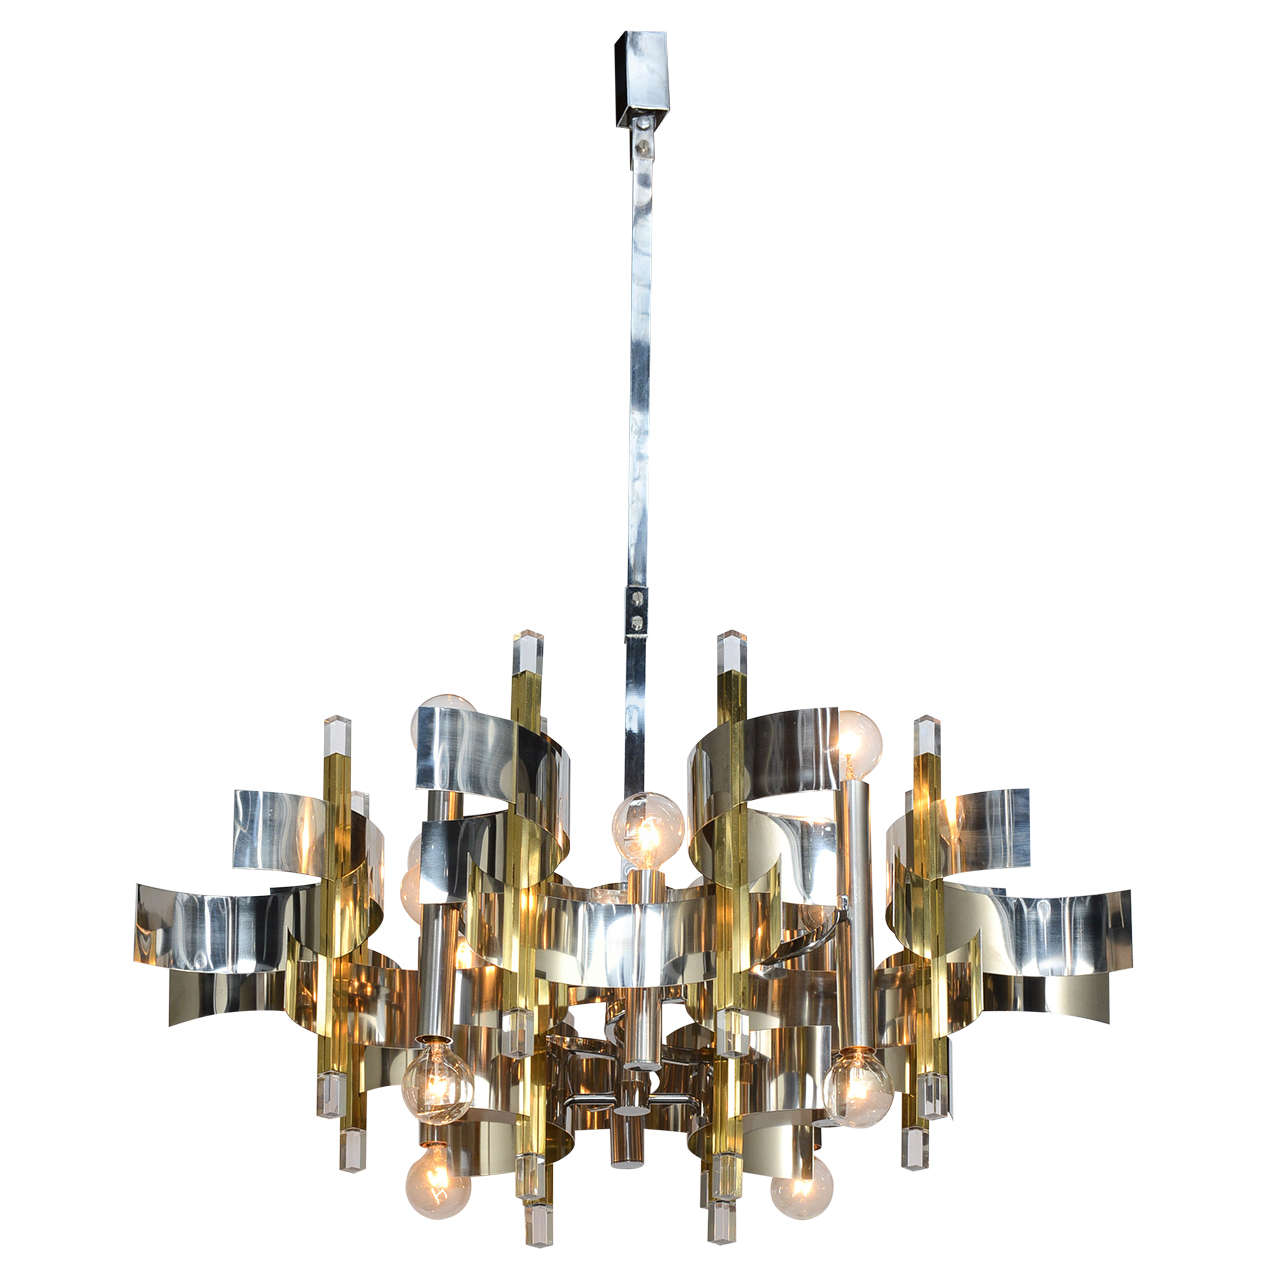 top f for chandeliers pendant at century furniture sale spray with mid id waterfall lights lucite x lighting chandelier